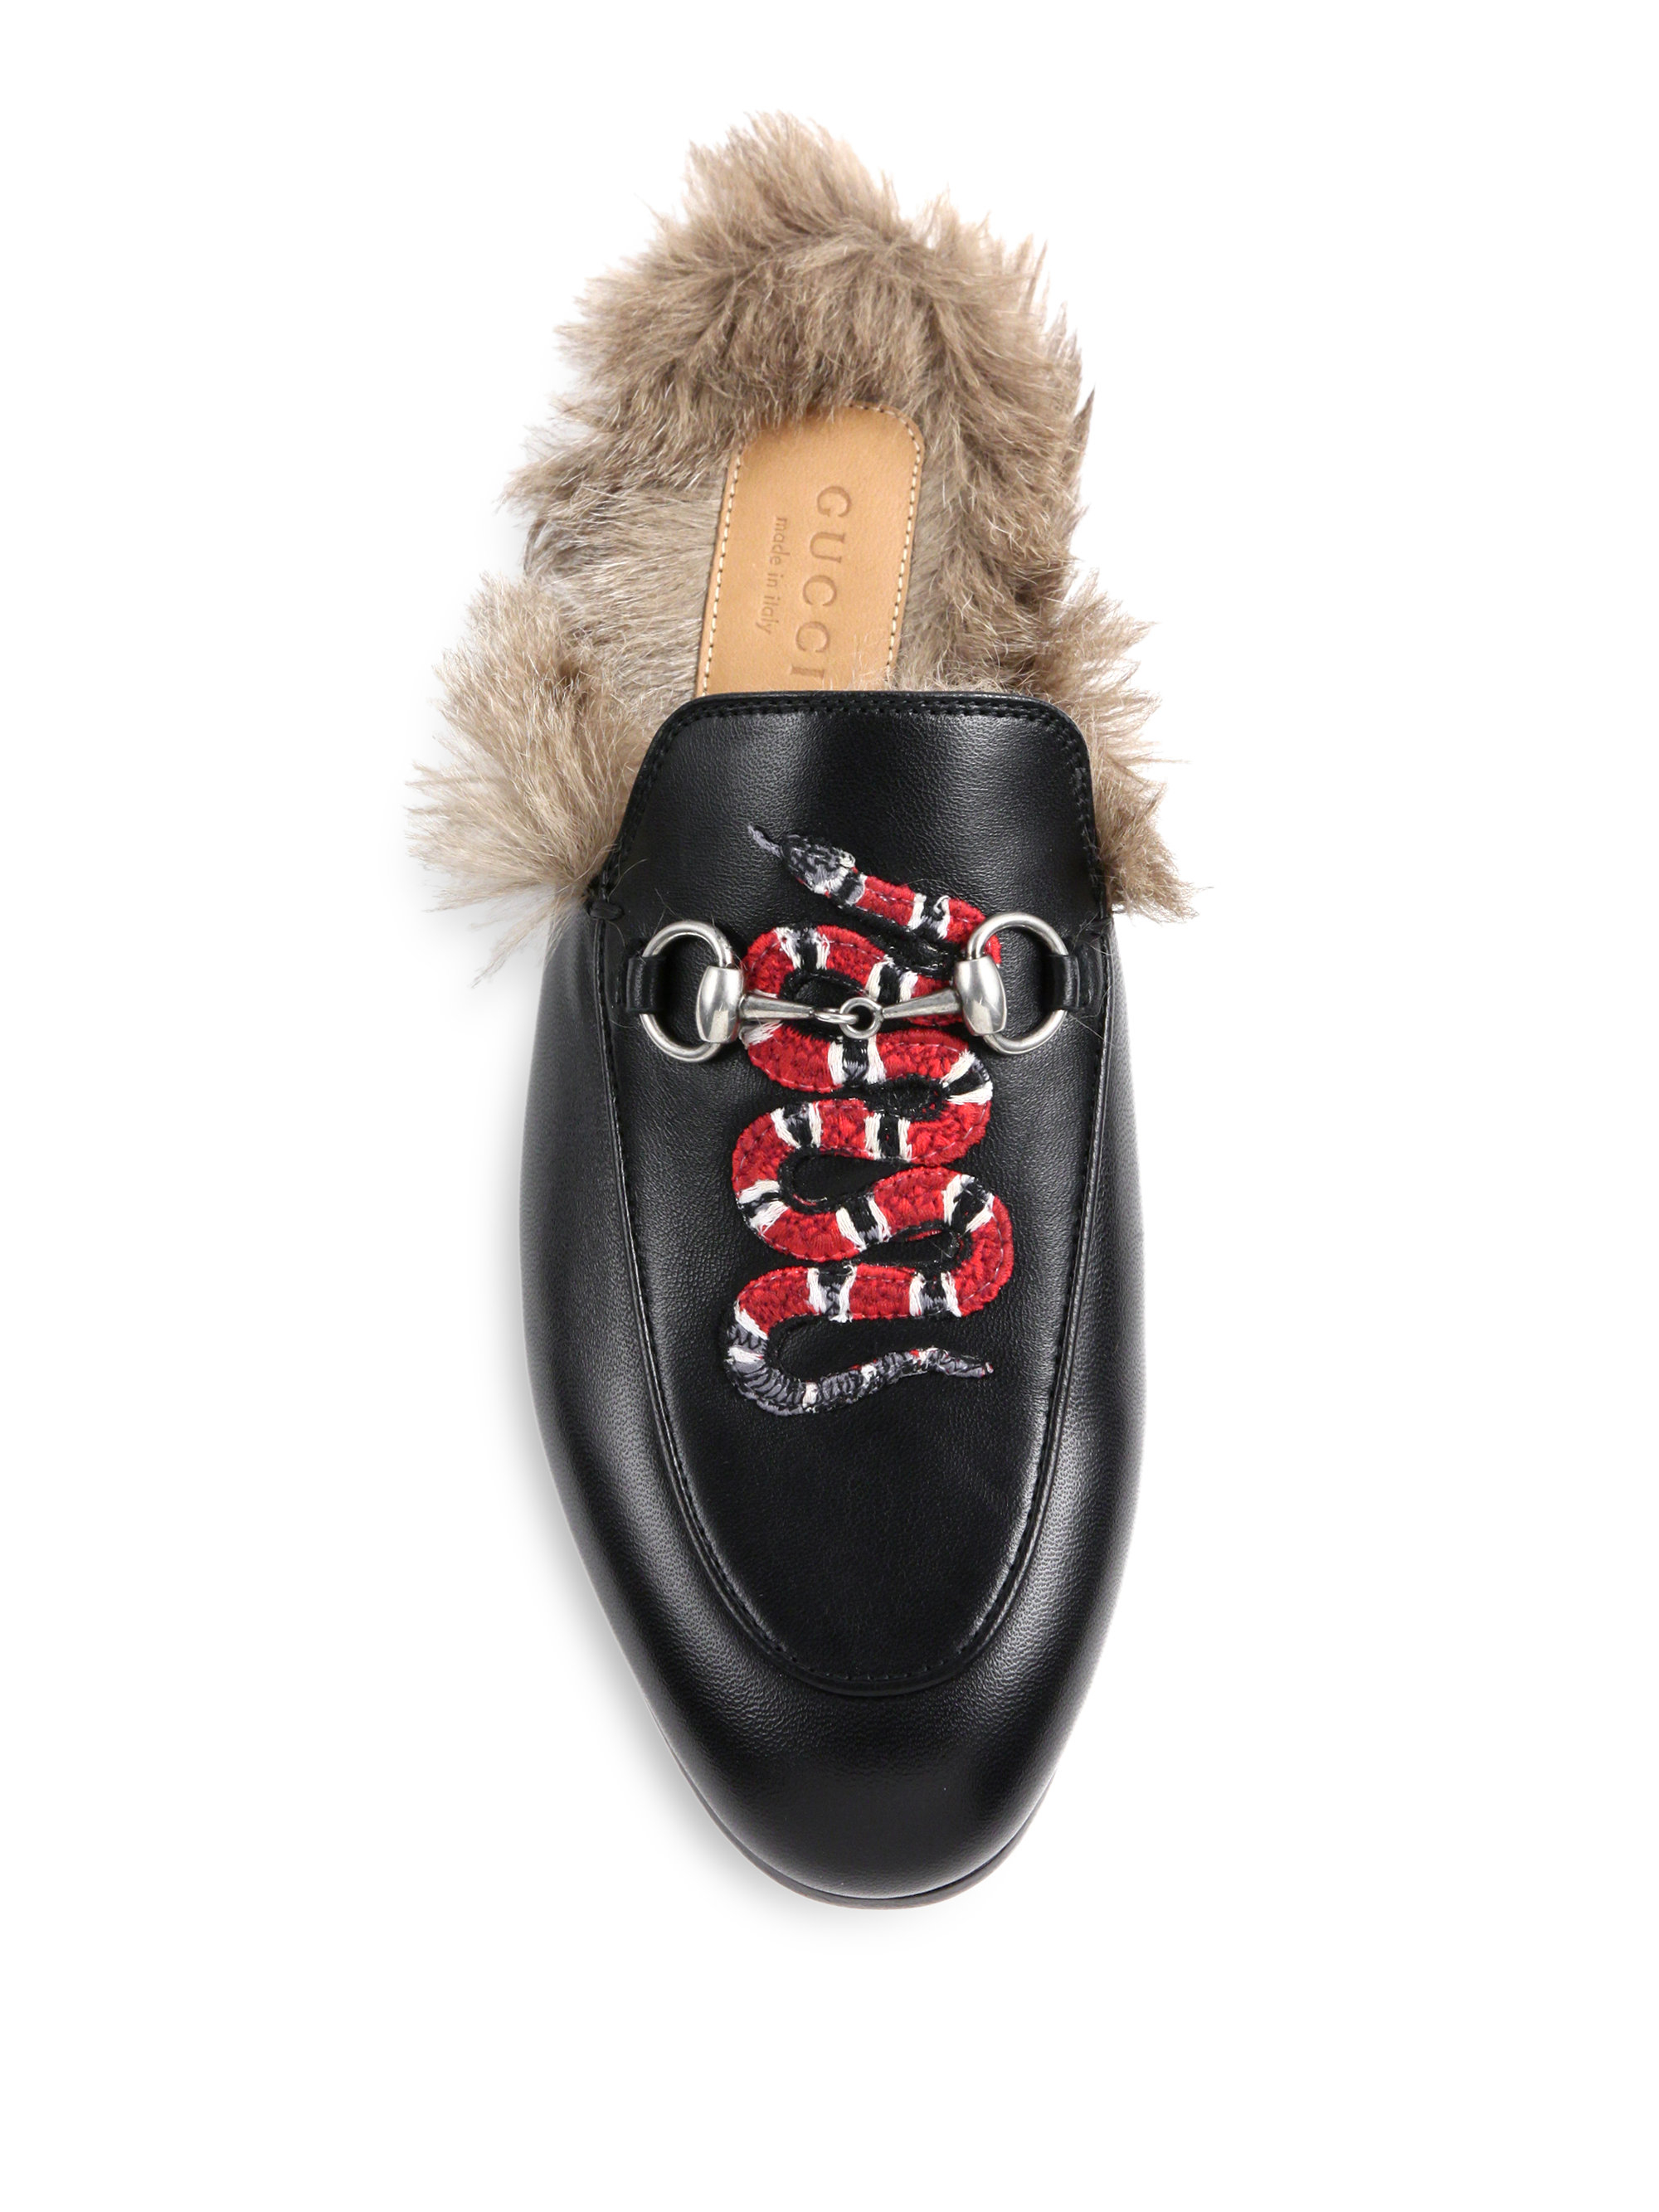 Gucci Princetown Fur-lined Snake